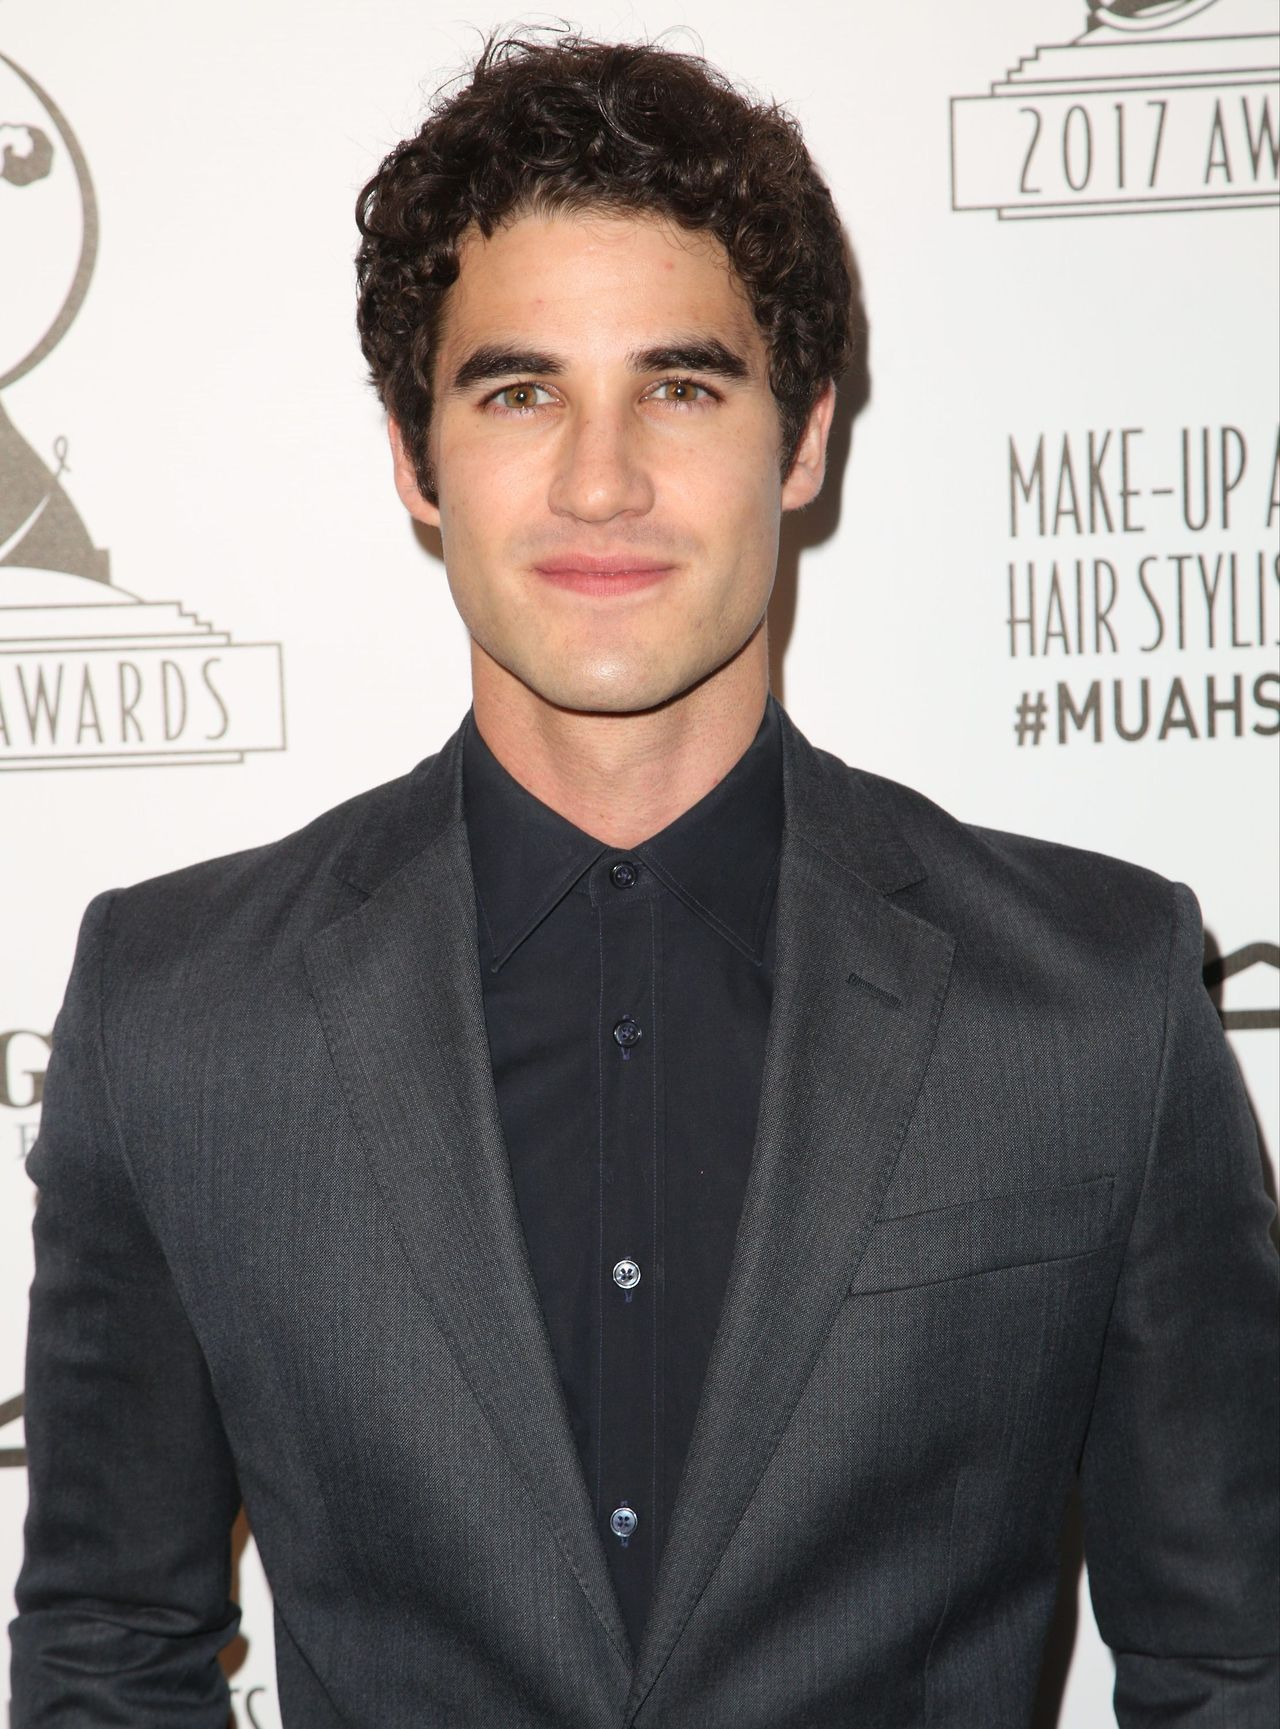 Topics tagged under ryanmurphy on Darren Criss Fan Community Tumblr_olnzf2Qxuw1qayexuo4_1280